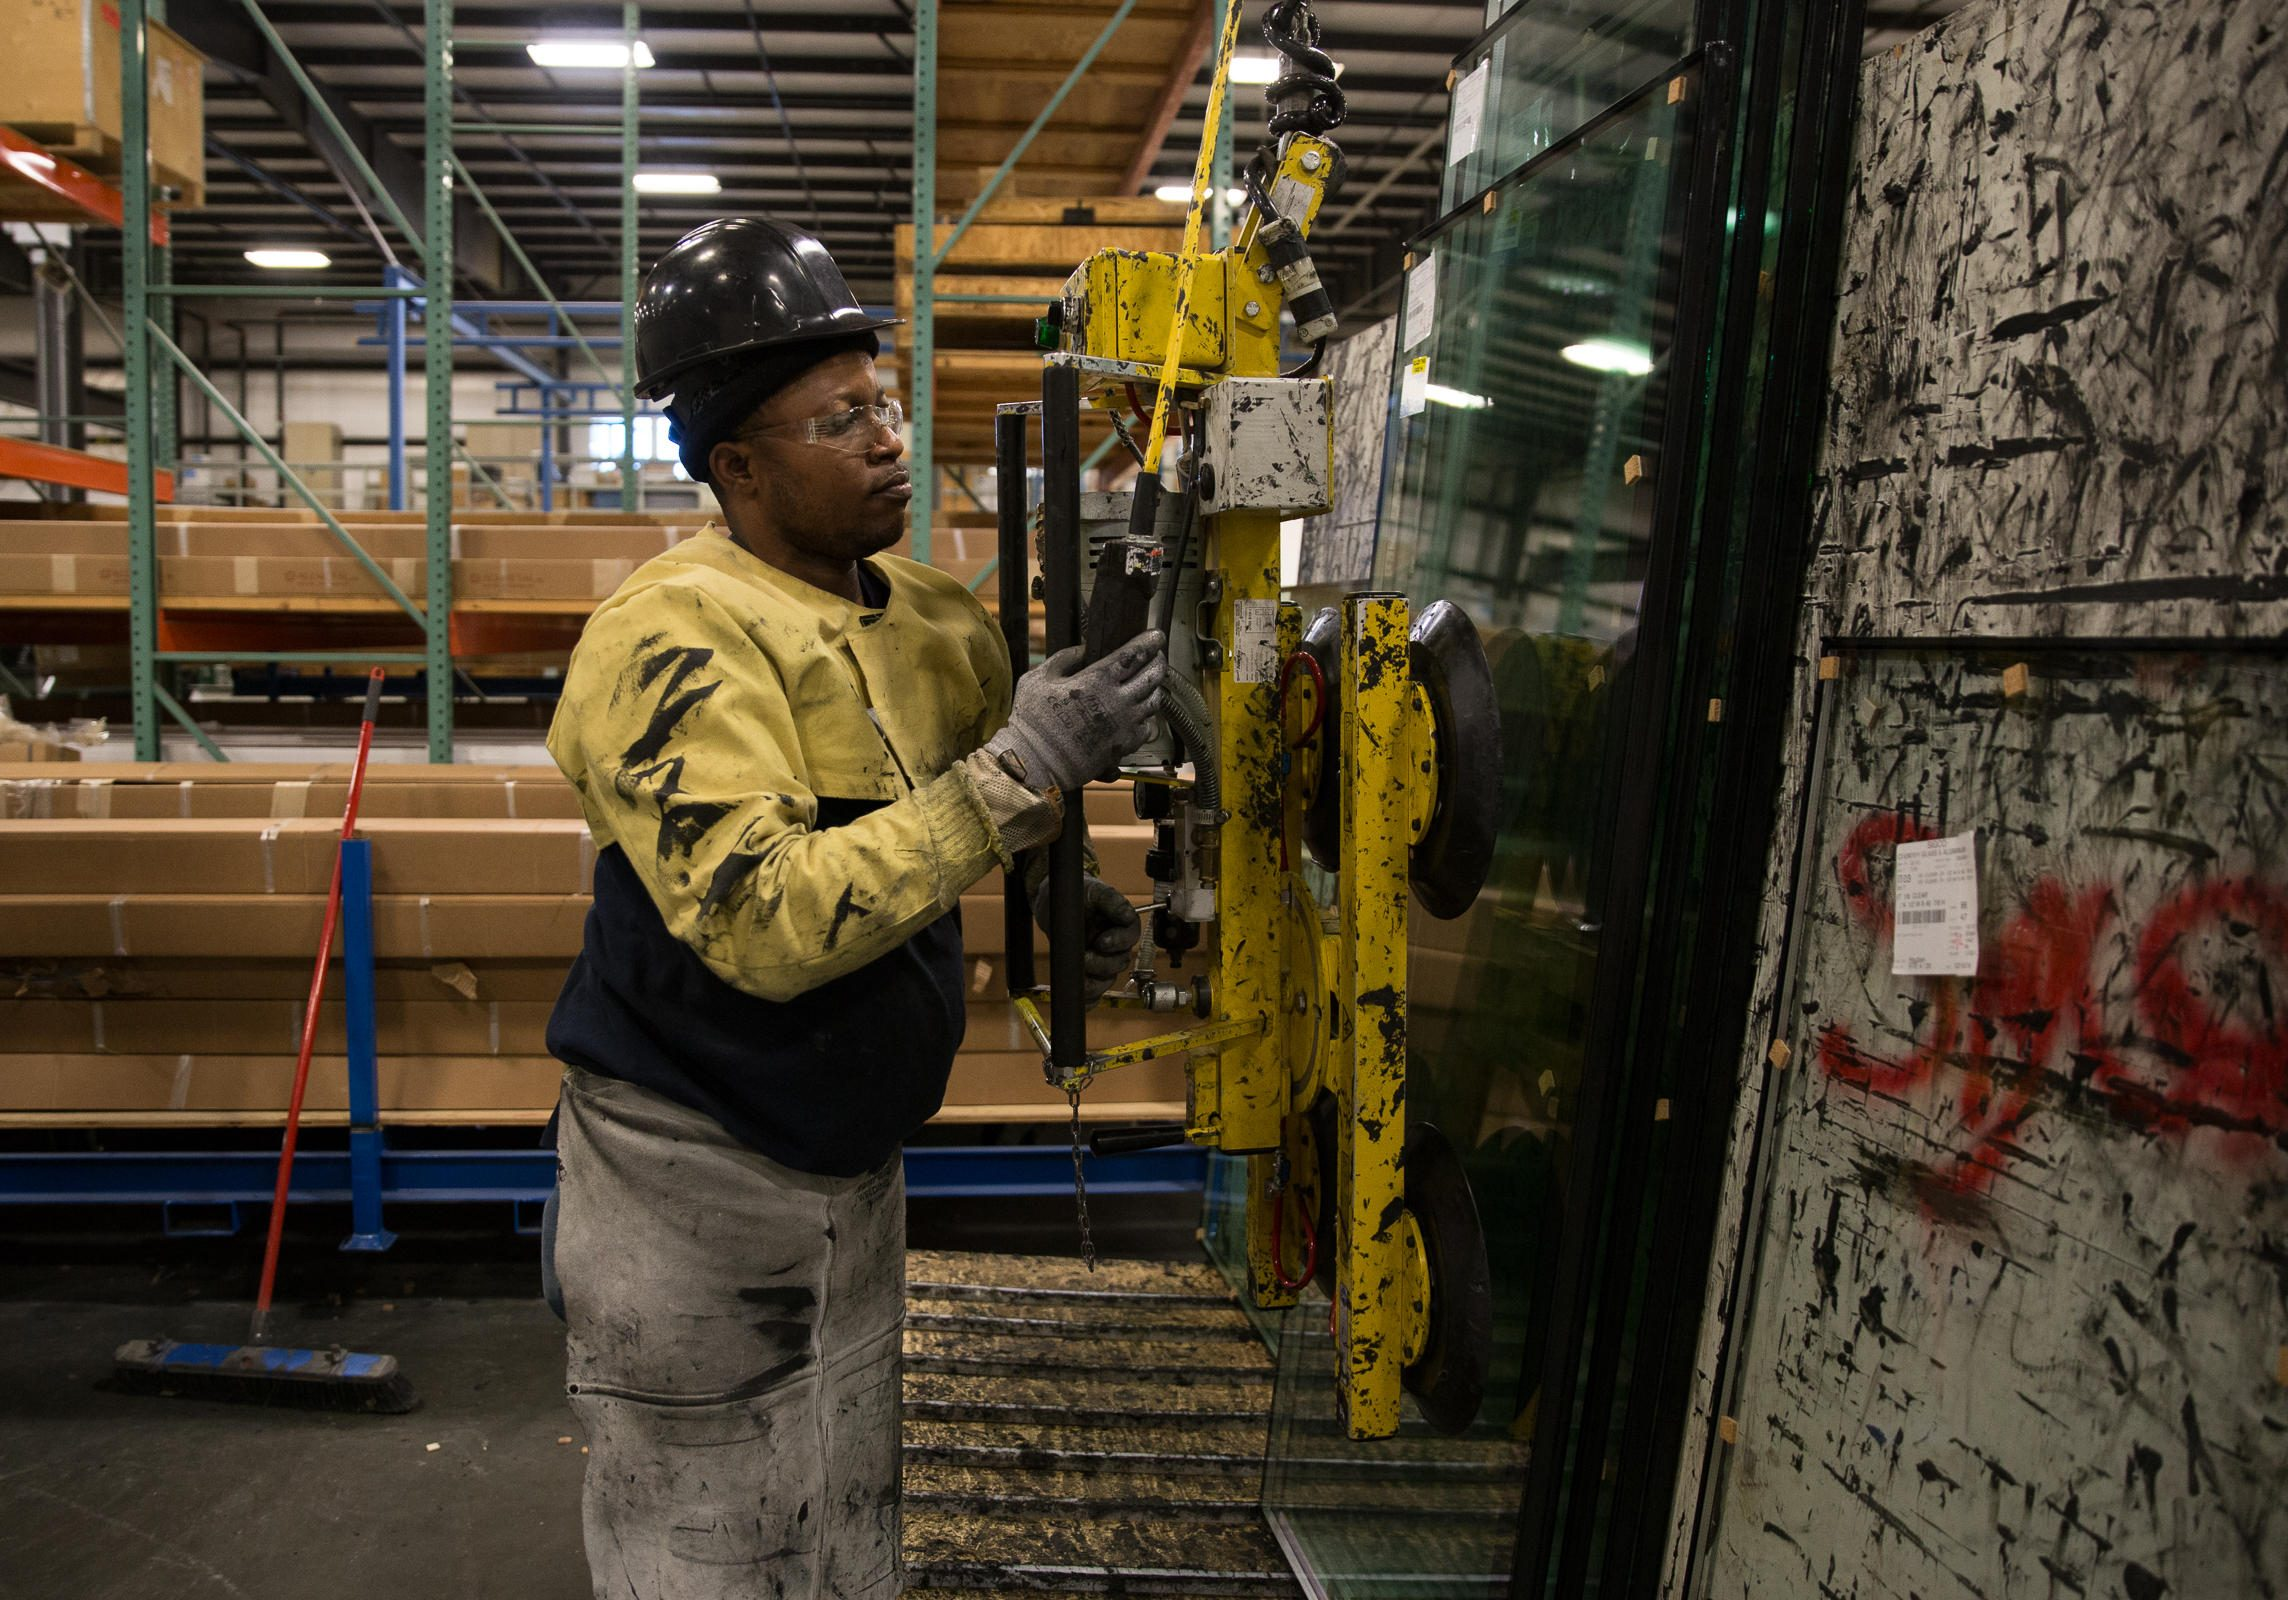 SIGCO worker Antonio Pedro came to the United States from Angola three years ago. The company says immigrant employees reduce Maine's workforce shortage. Photo credit: Ryan Caron King / NENC